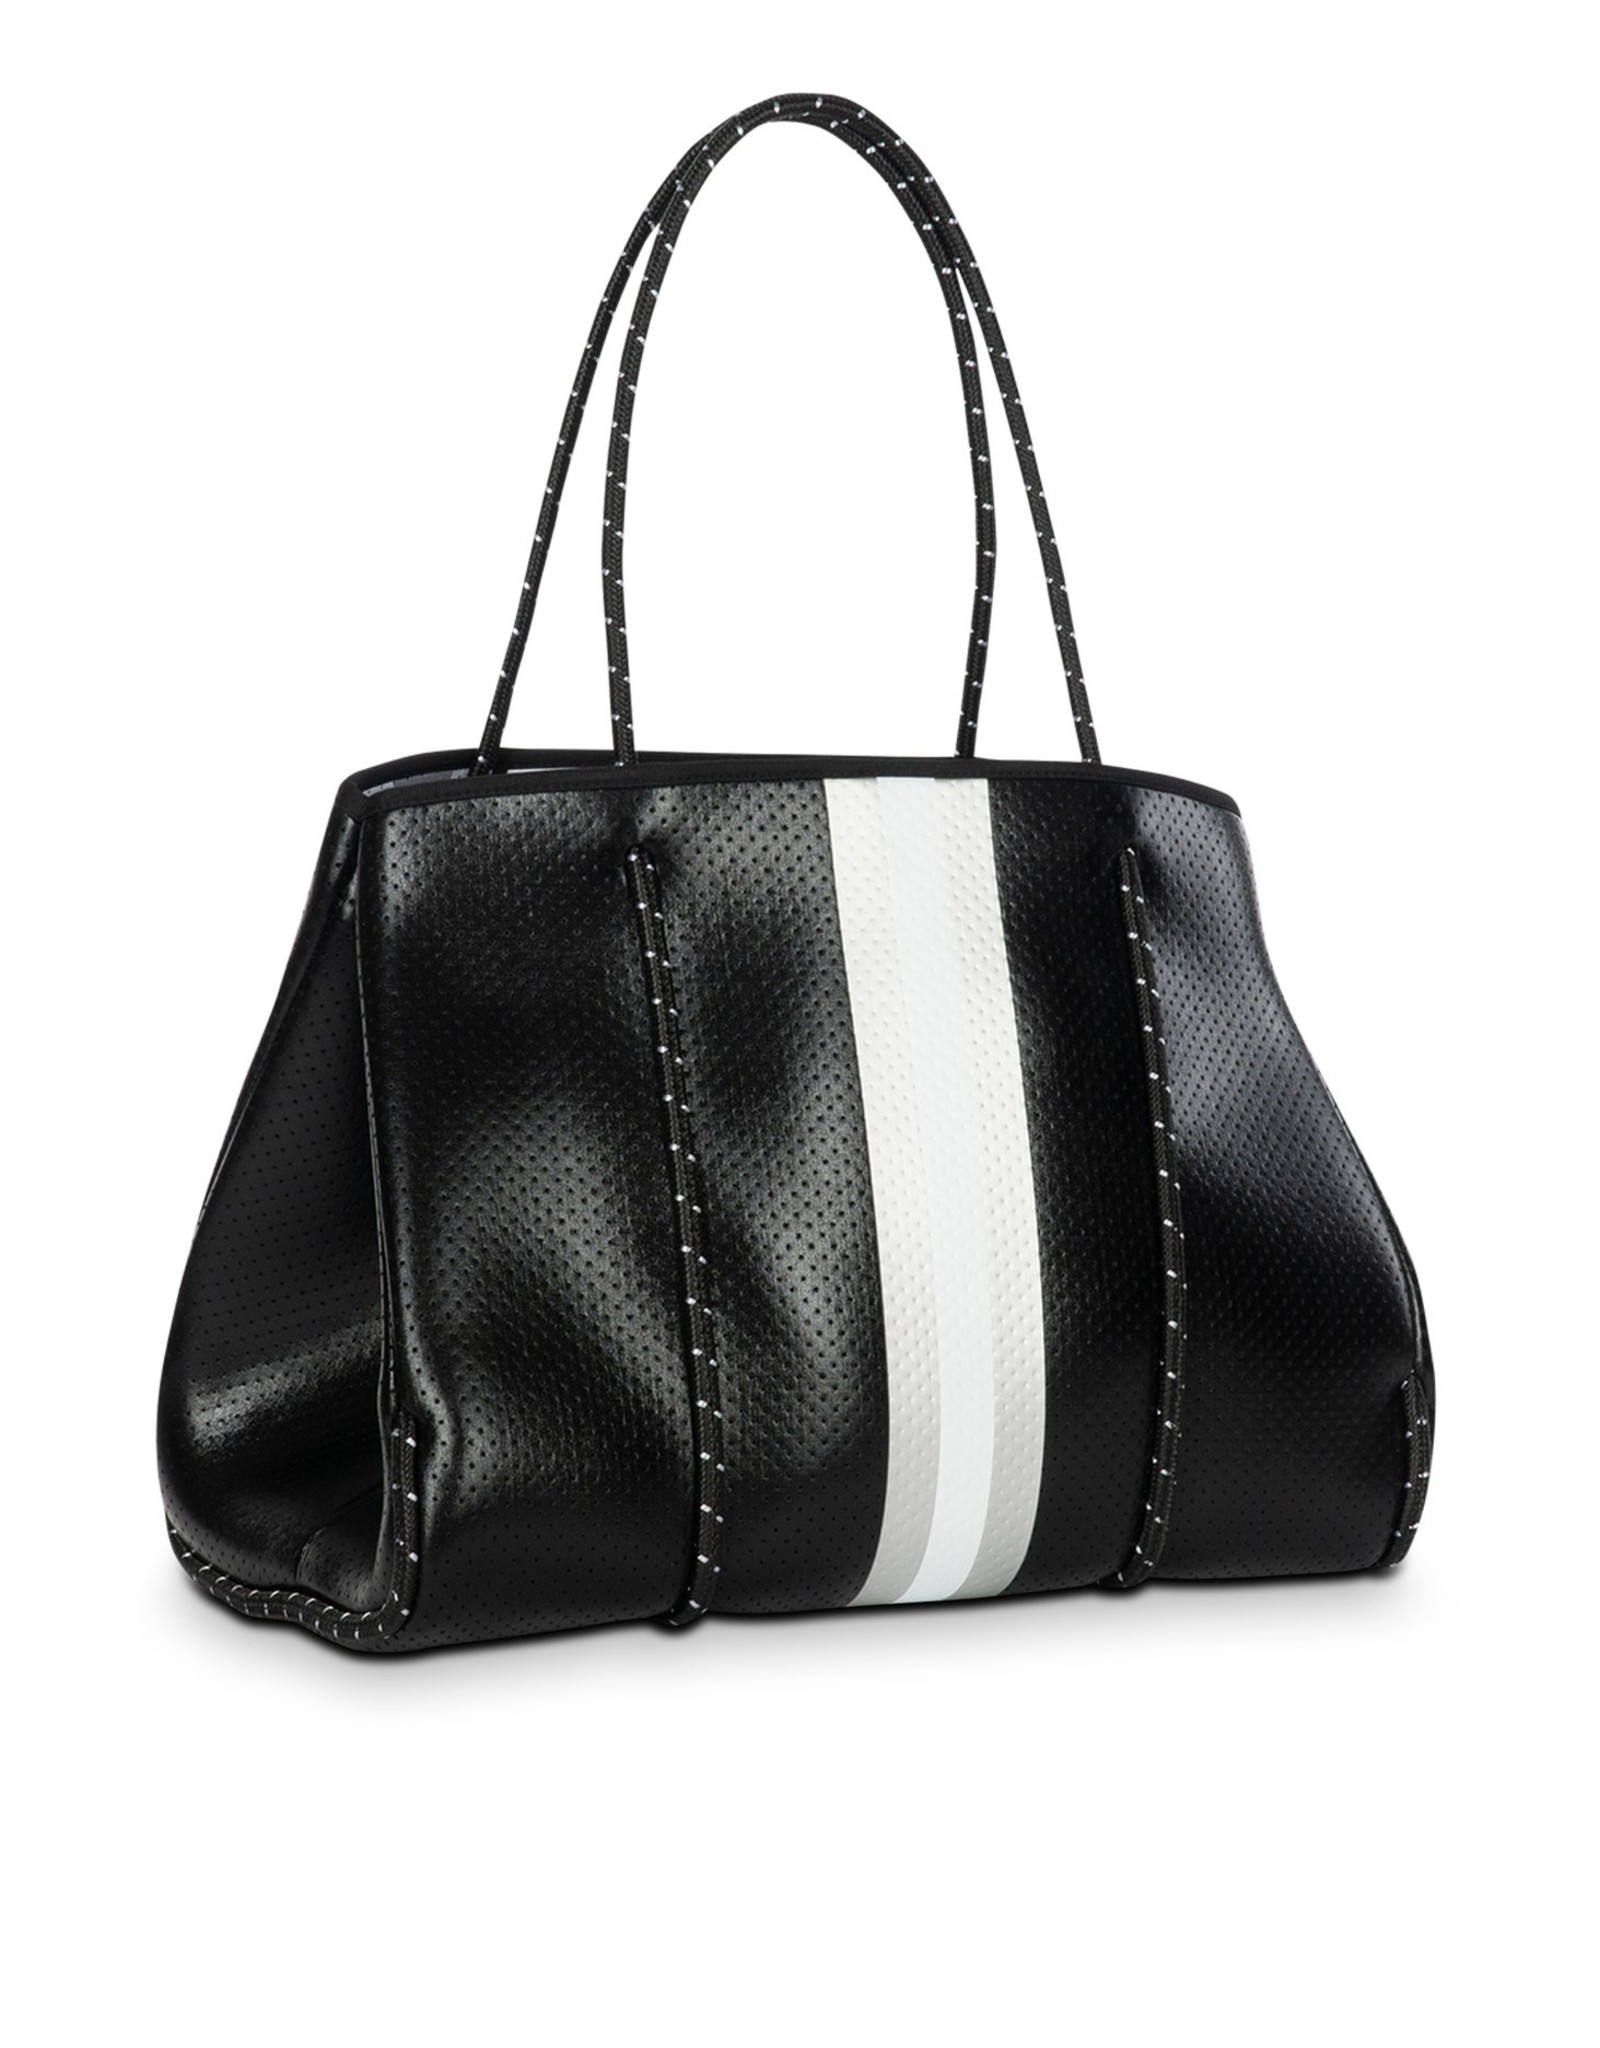 Greyson Uptown Tote